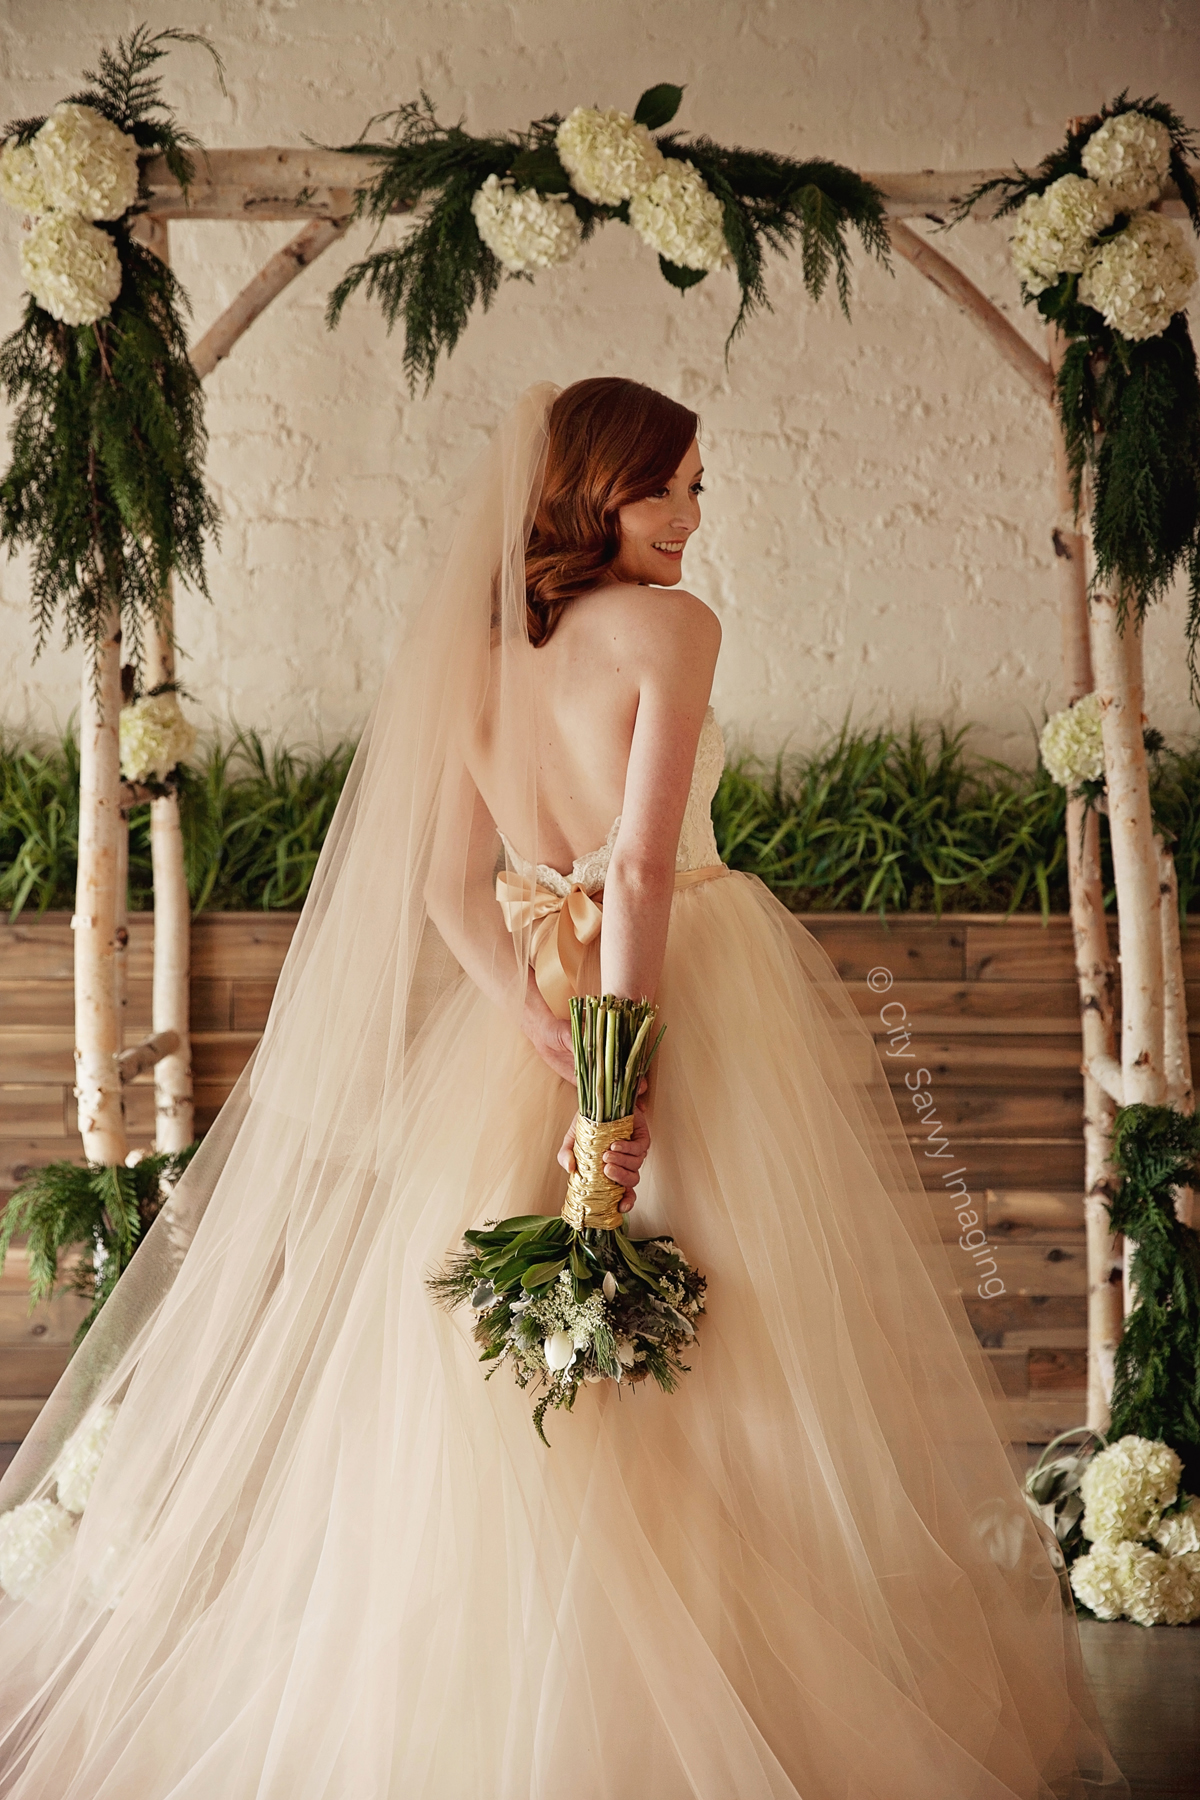 Wedding Dresses Lincoln Park Chicago : Lincoln park west loop blush inspired romantic vintage